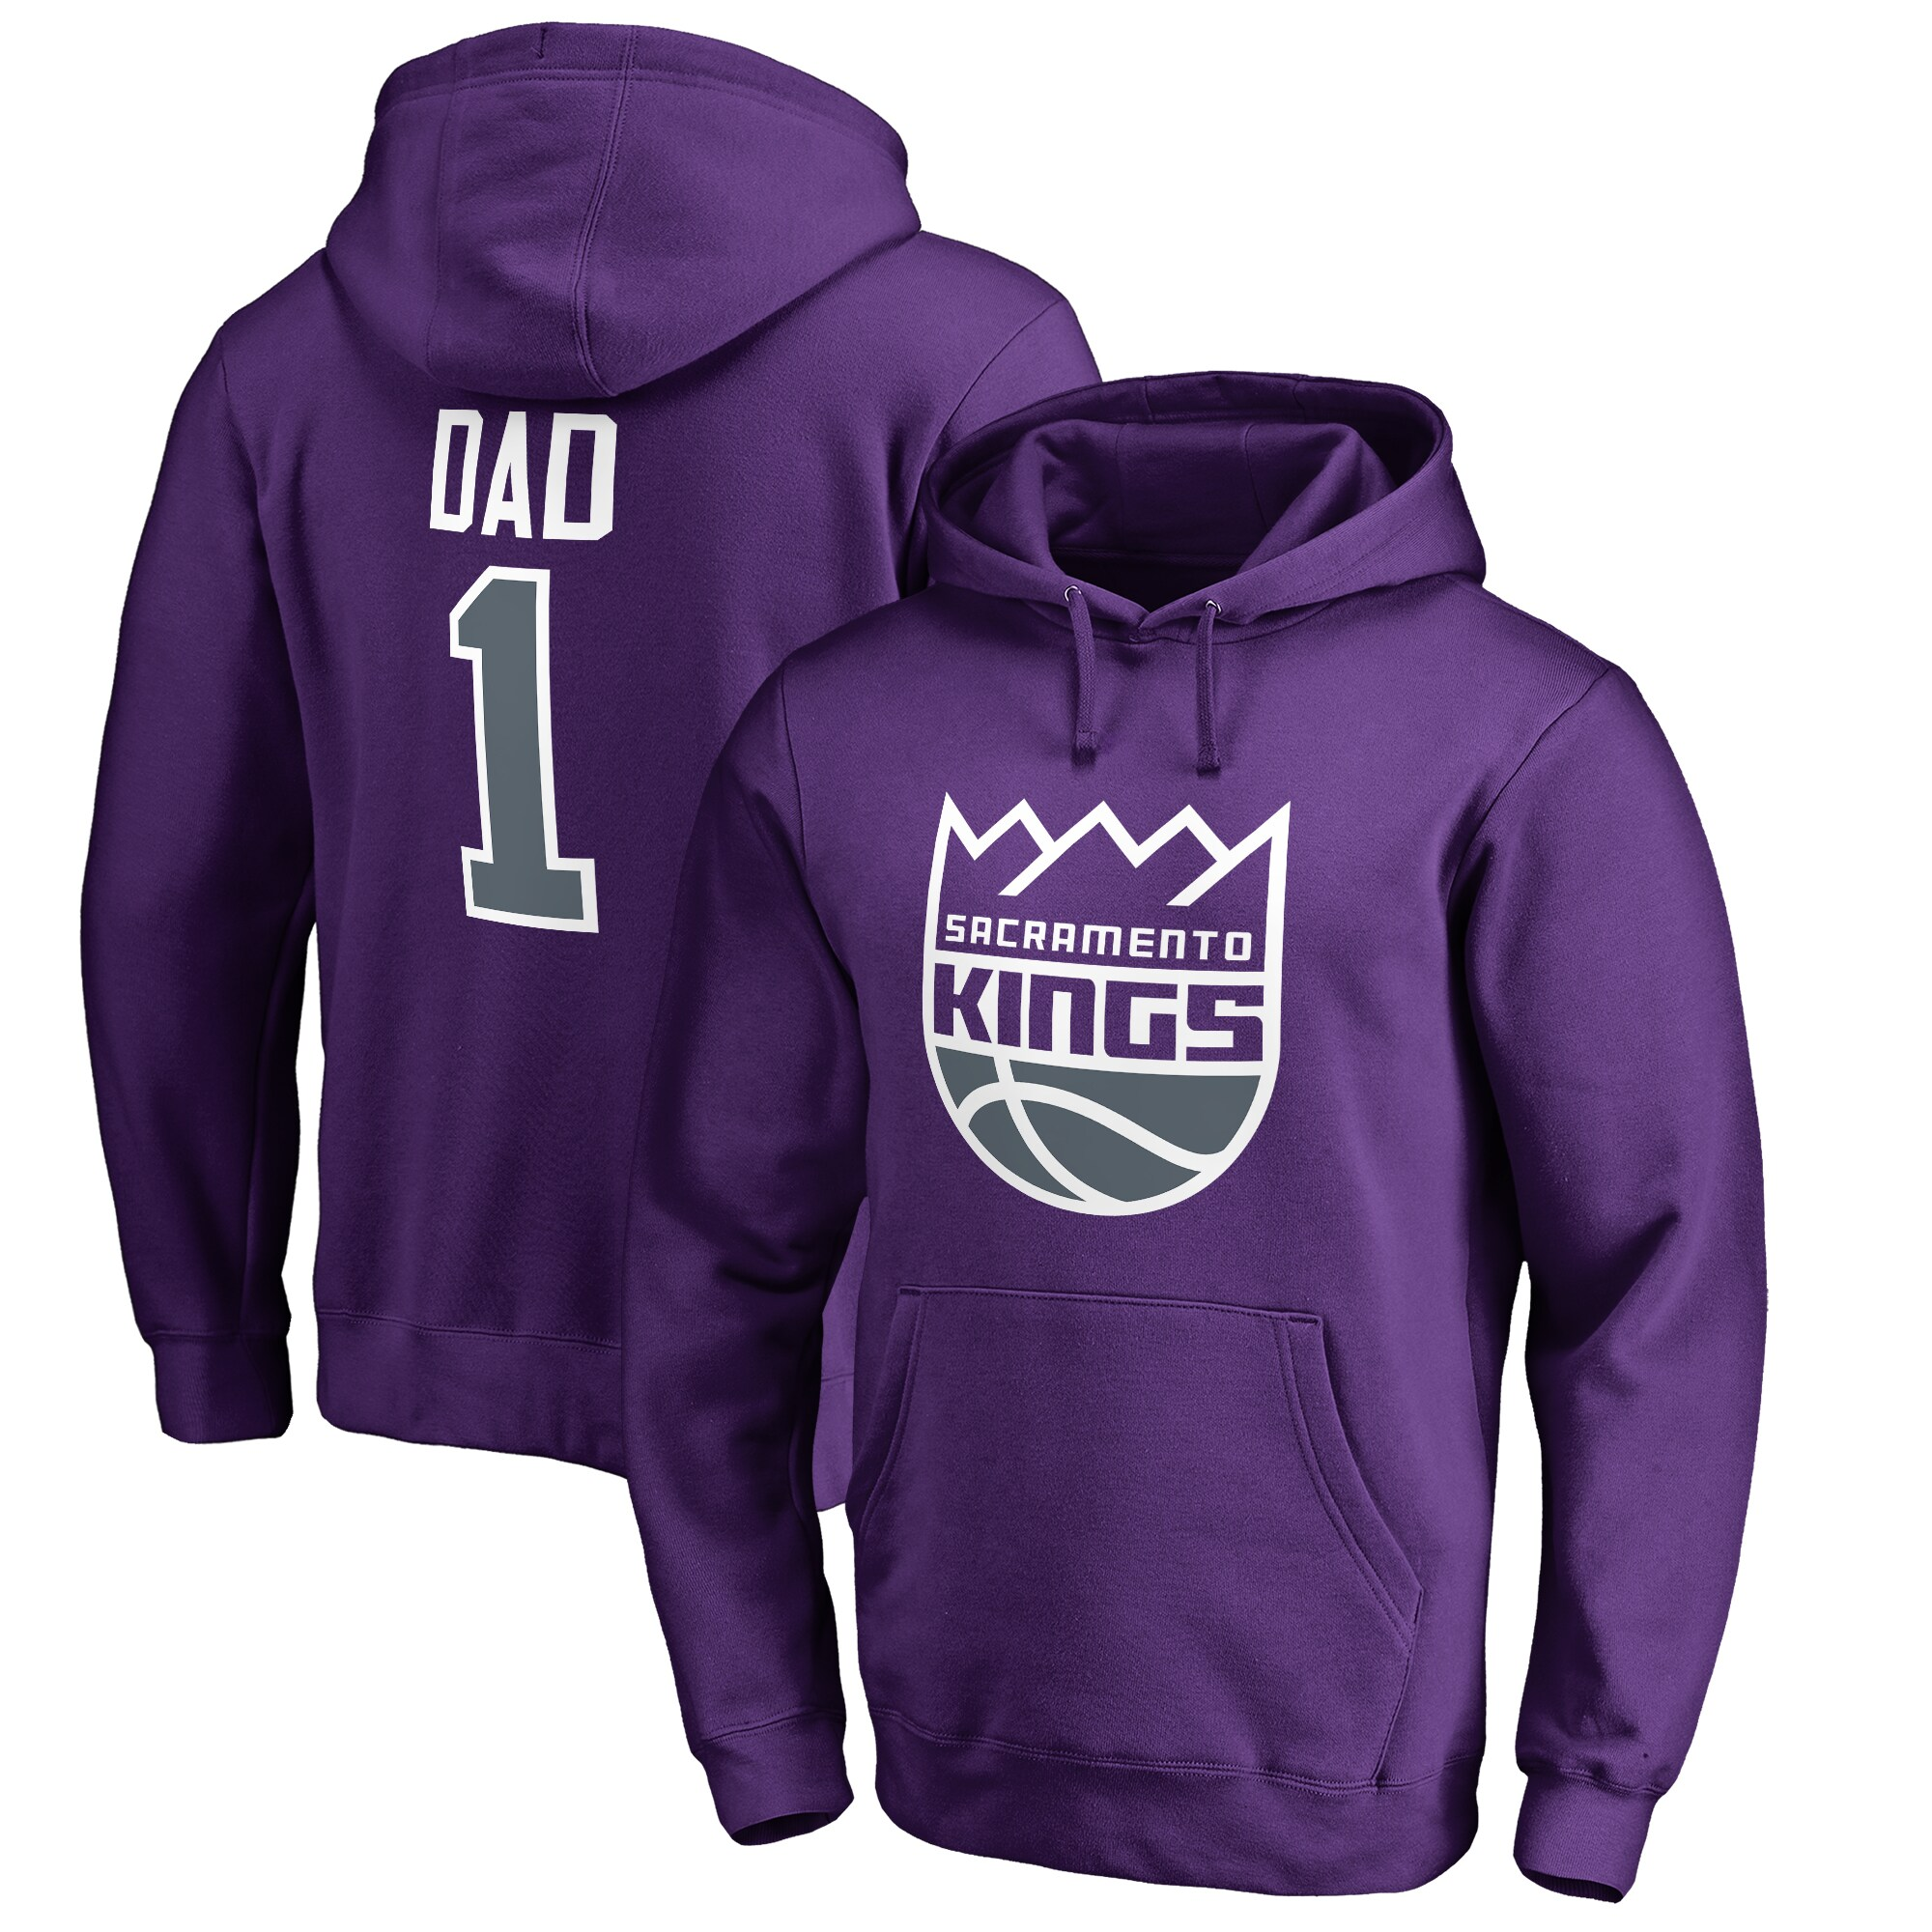 Sacramento Kings Fanatics Branded Big & Tall #1 Dad Pullover Hoodie - Purple